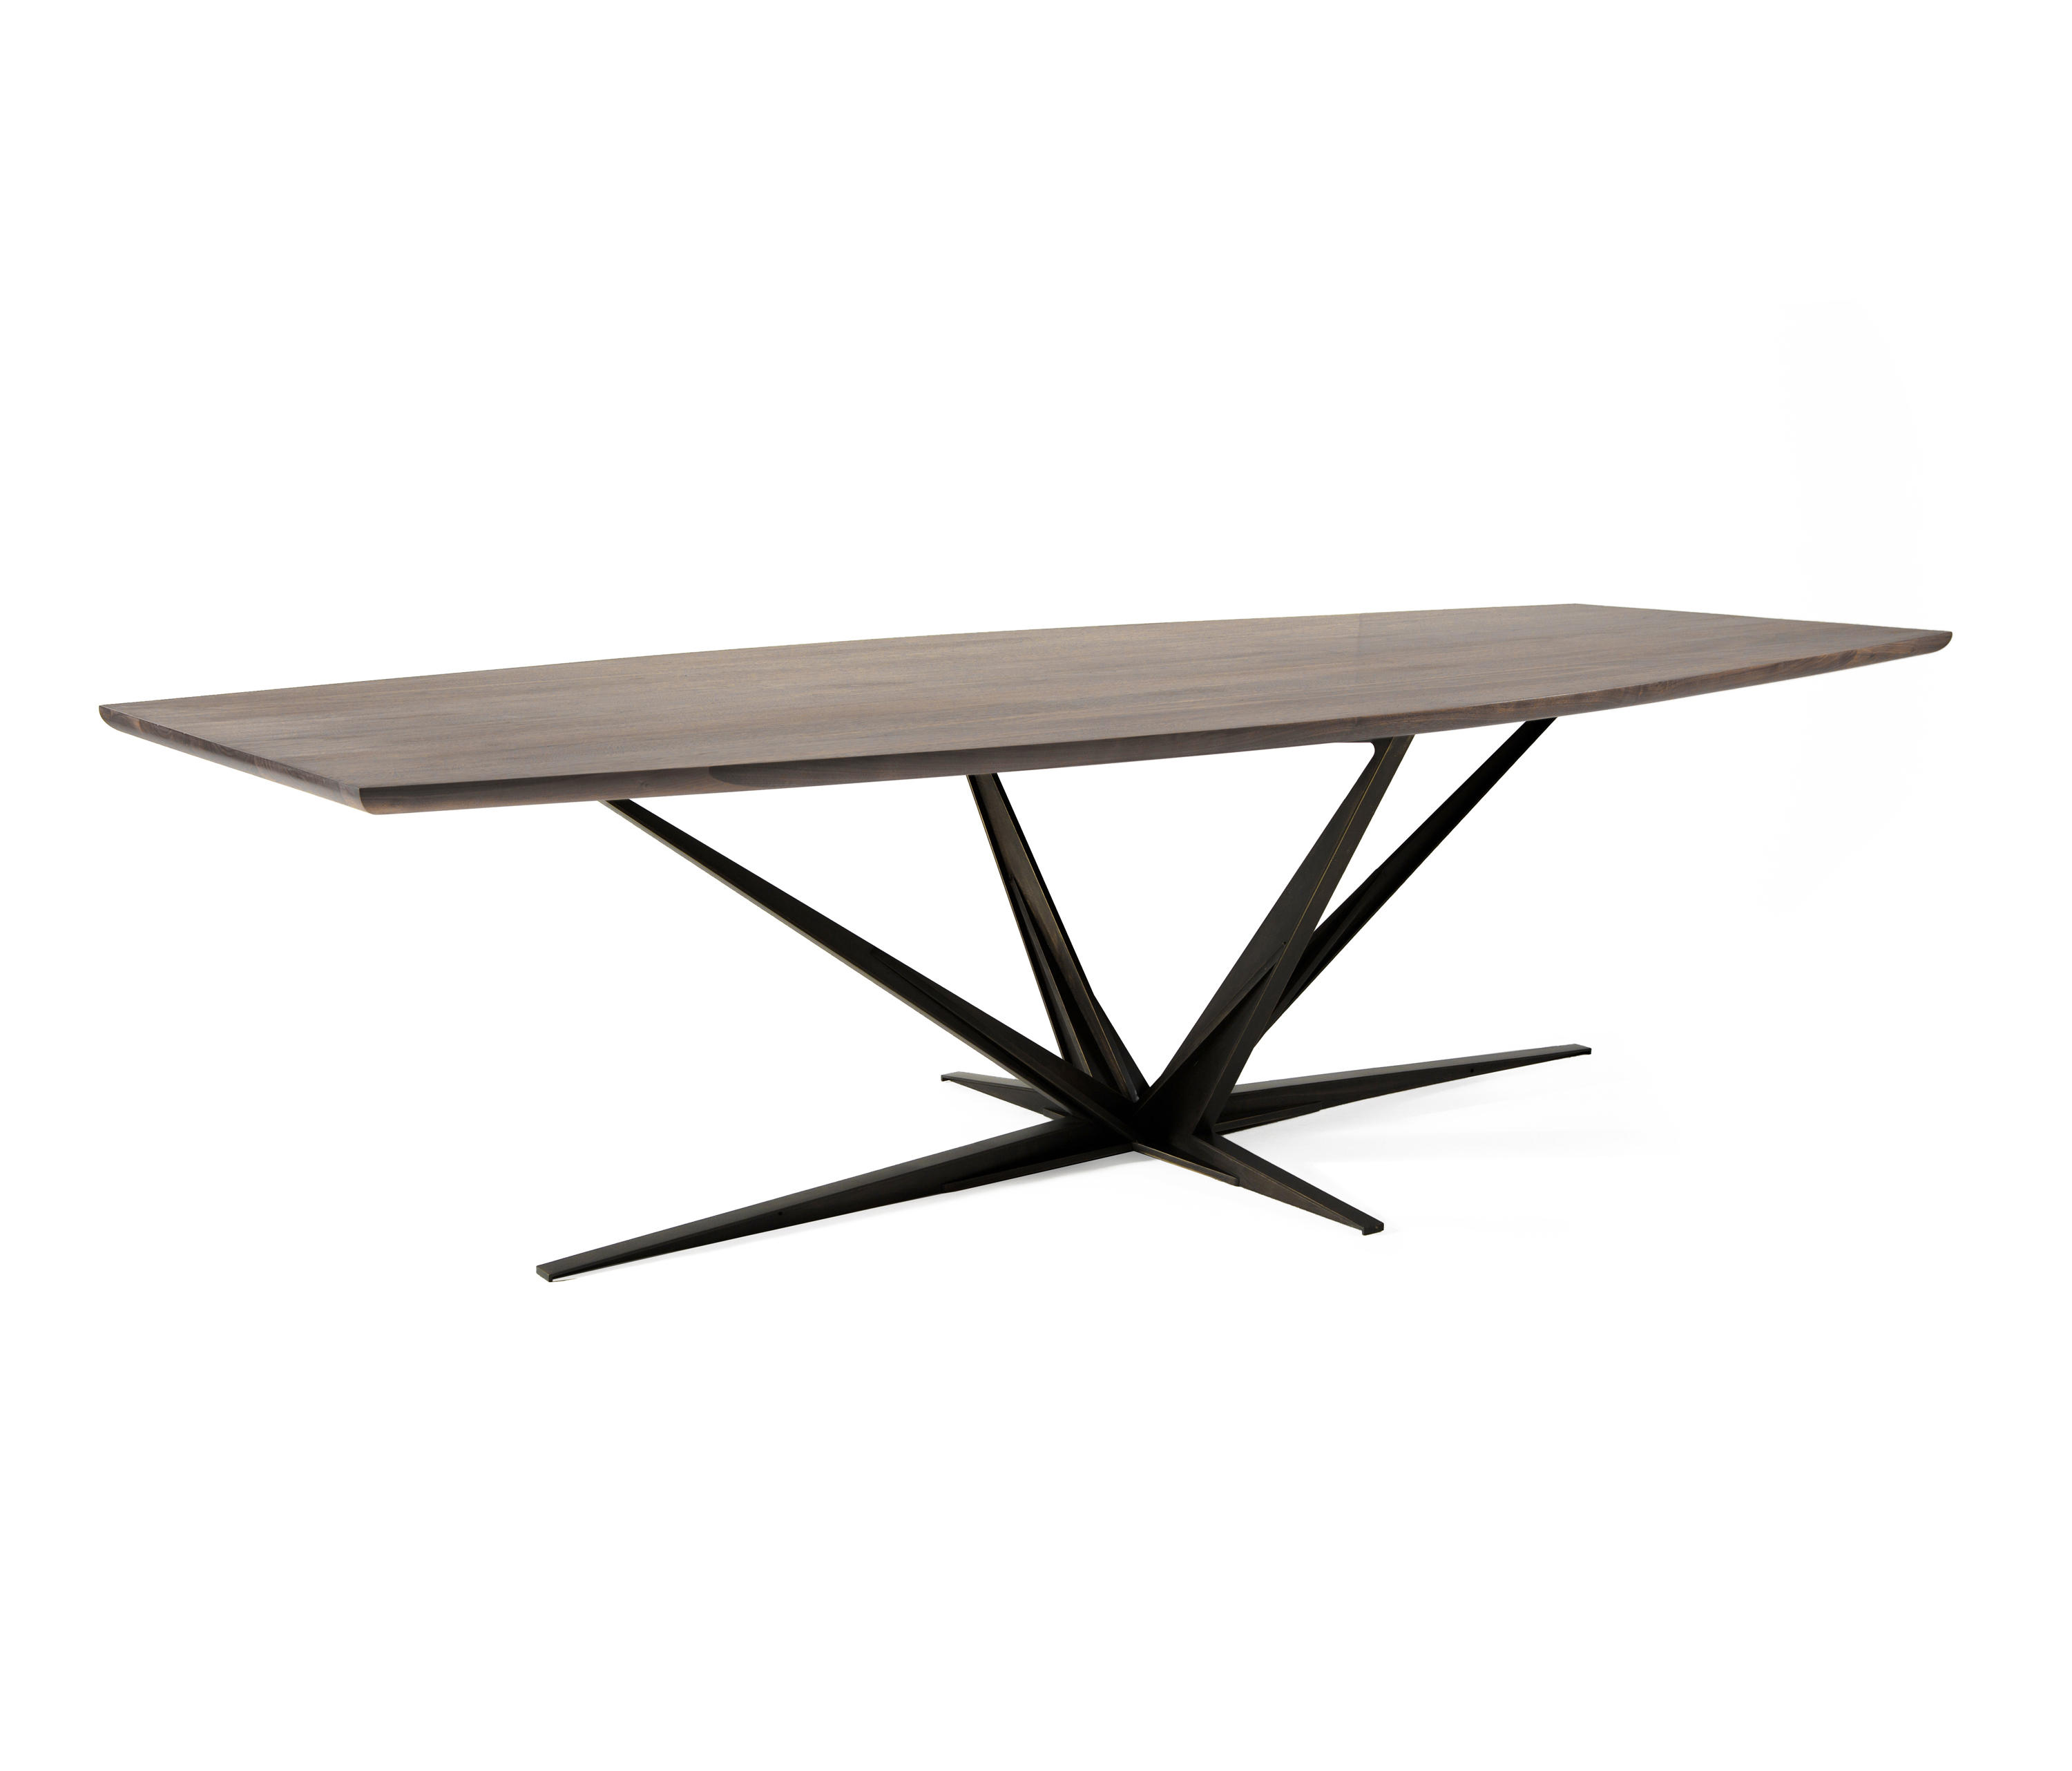 Dining table restaurant dining tables -  Agave Dining Table By Luteca Restaurant Tables